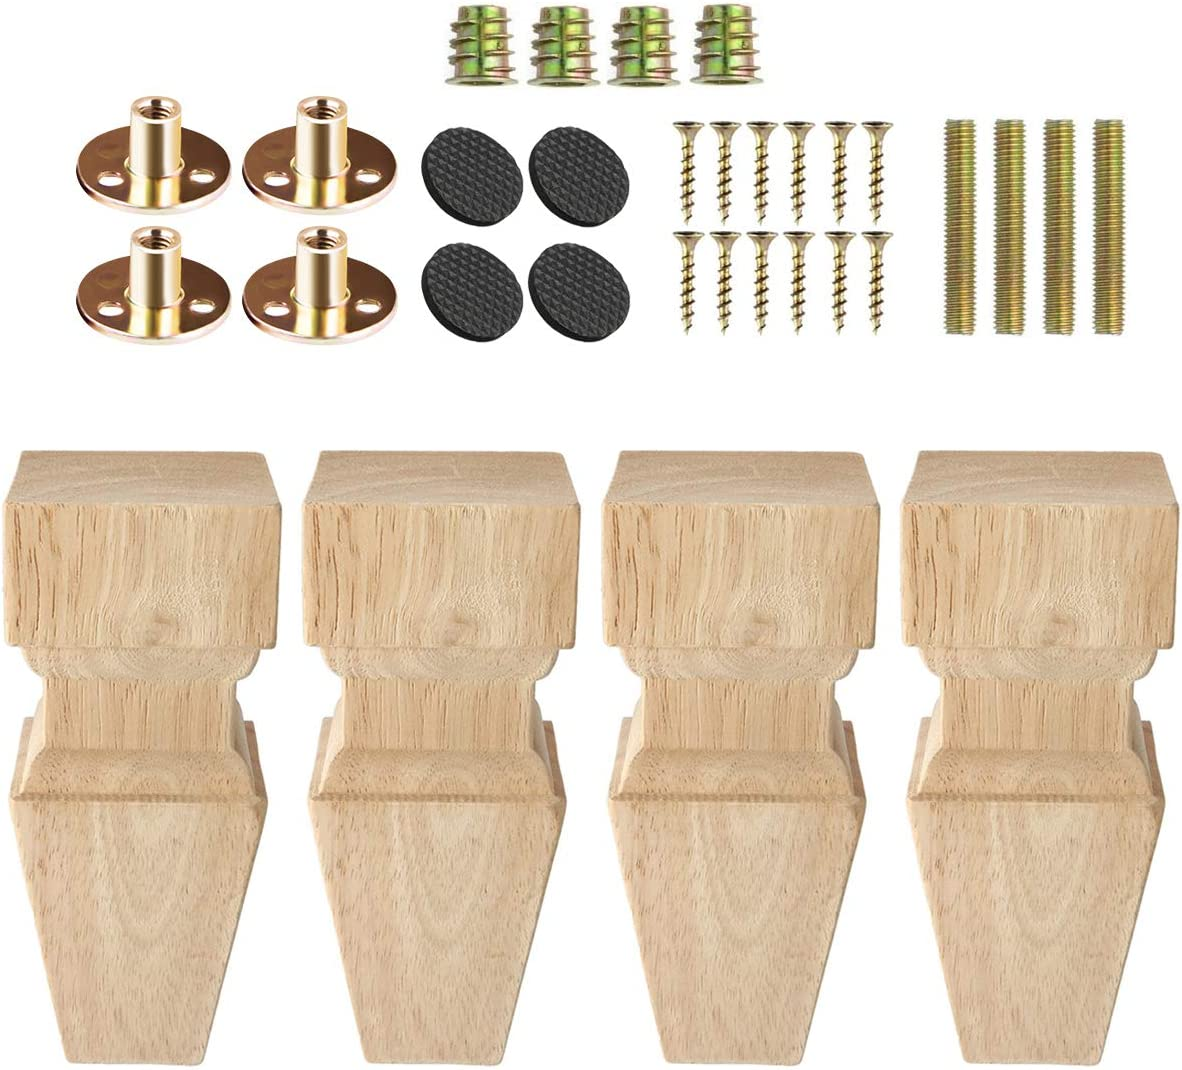 6 inch / 15cm Wooden Furniture Legs, La Vane Set of 4 Carved Geometry Solid Wood Unfinished Replacement Bun Feet with Mounting Plate & Screws for Sofa Cabinet Couch Table TV Stand